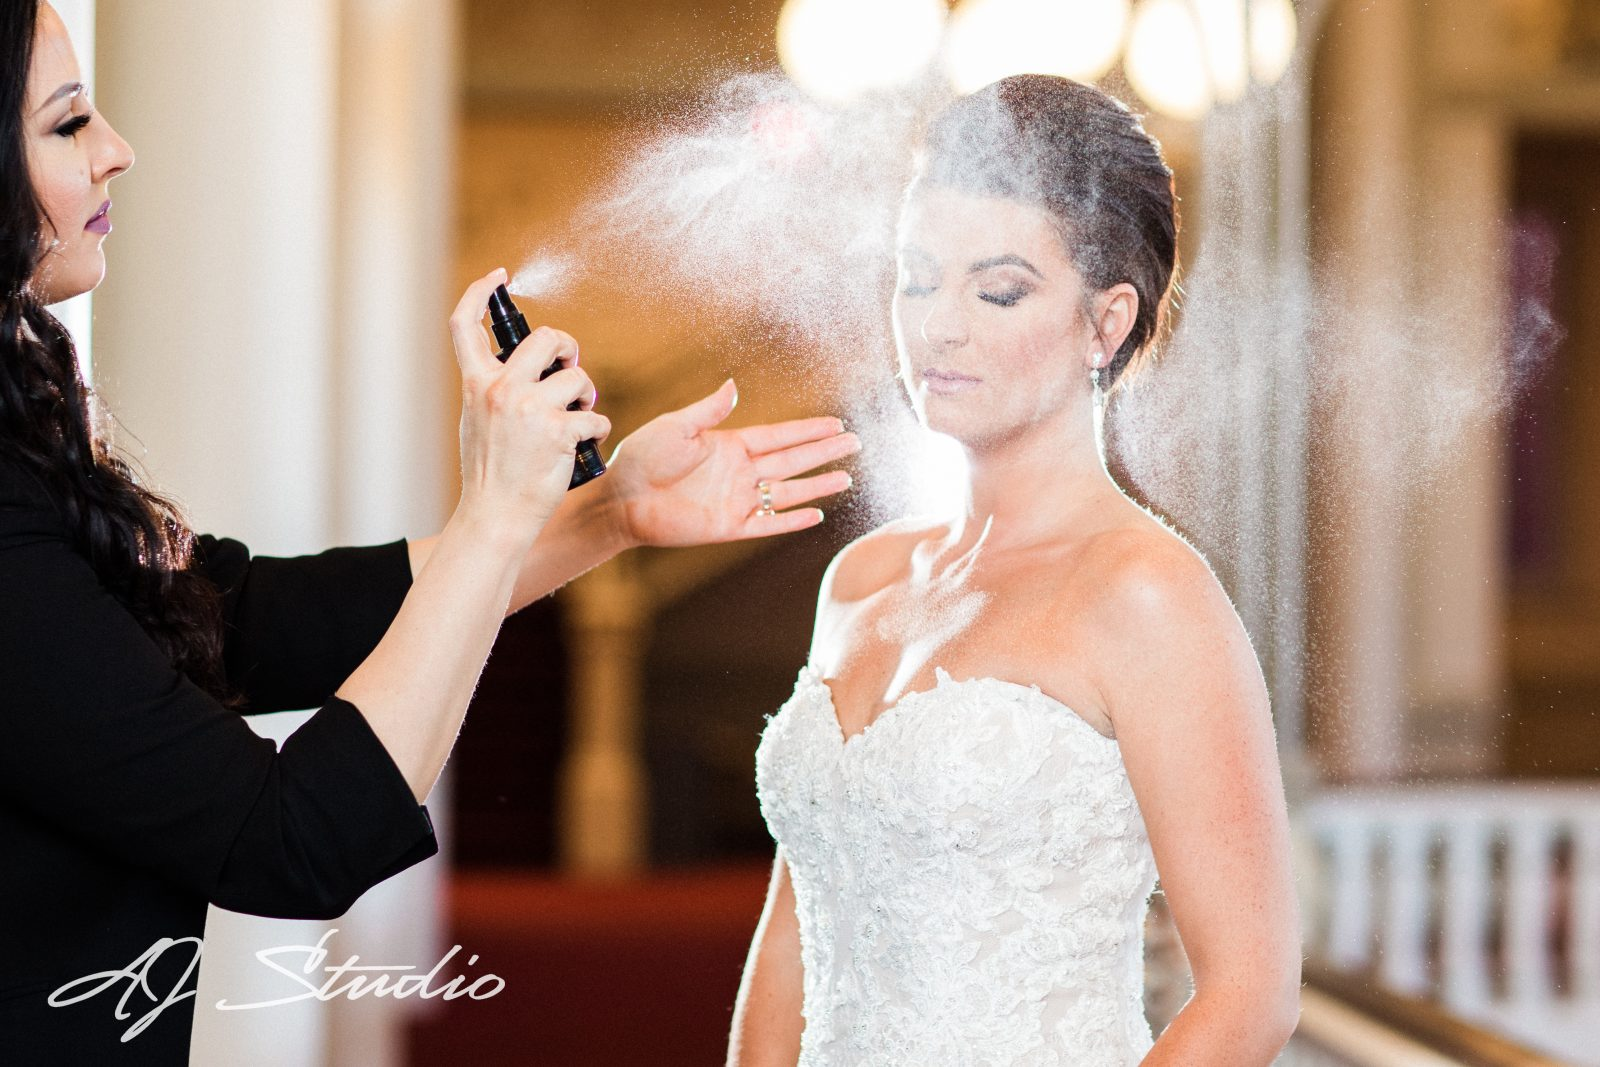 Bride getting makeup done